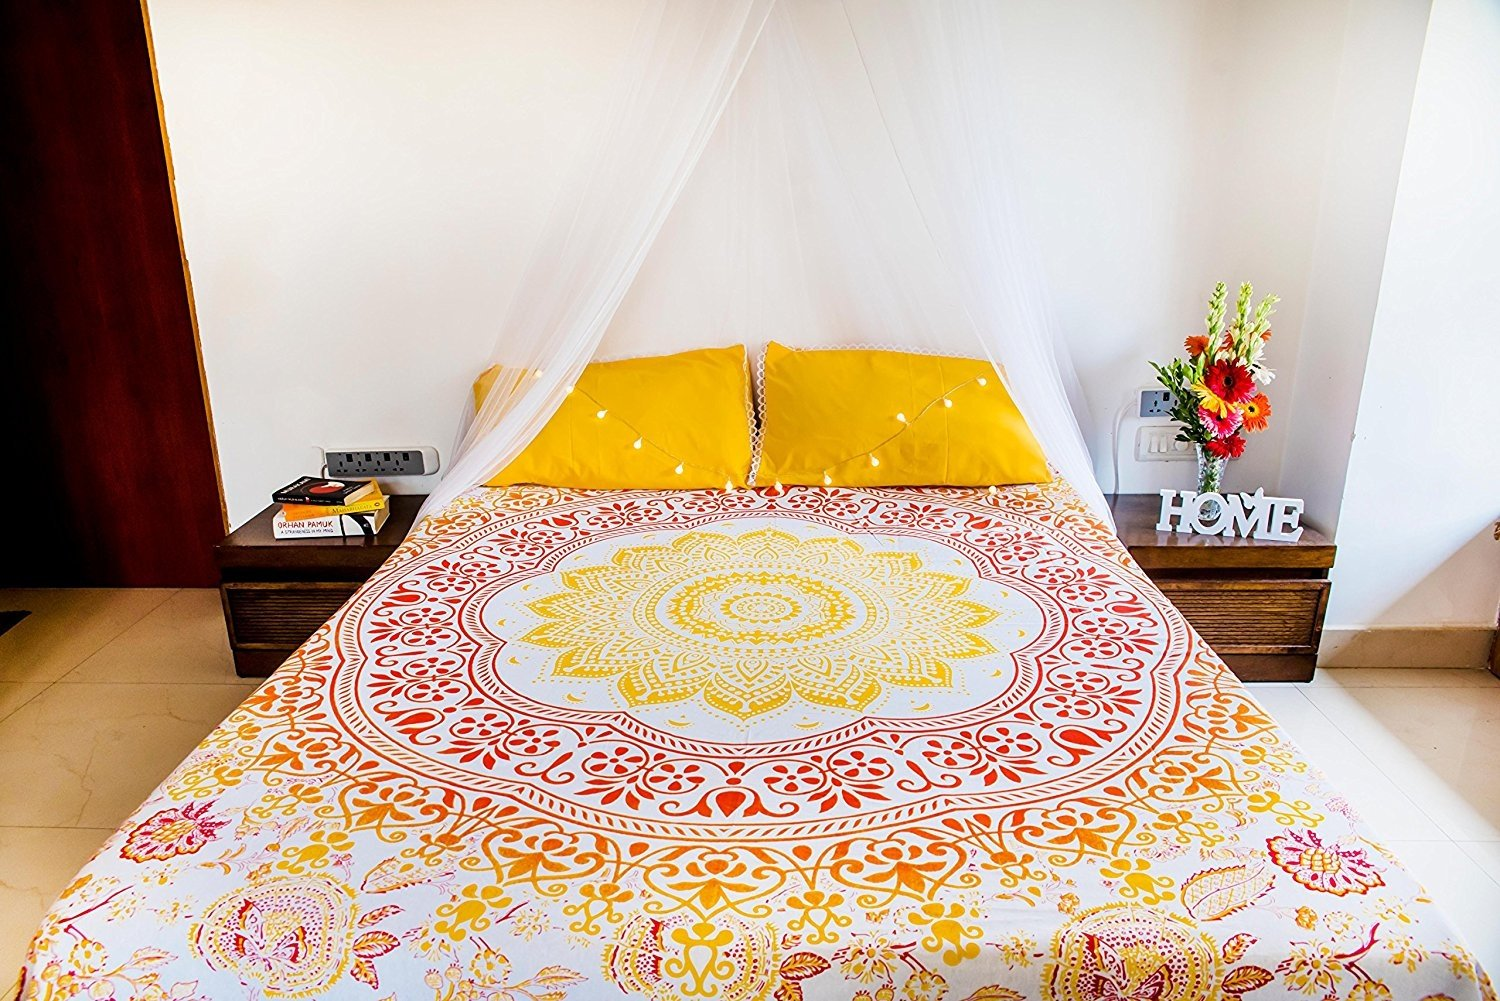 Folkulture Sunflower Mandala Tapestry Bedding with Pillow Covers, Indian Bohemian Wall Hanging, Picnic Blanket or Hippie Beach Throw, Hippy Ombre Bedspread for Bedroom, Queen Size Yellow Boho Spread FMT37